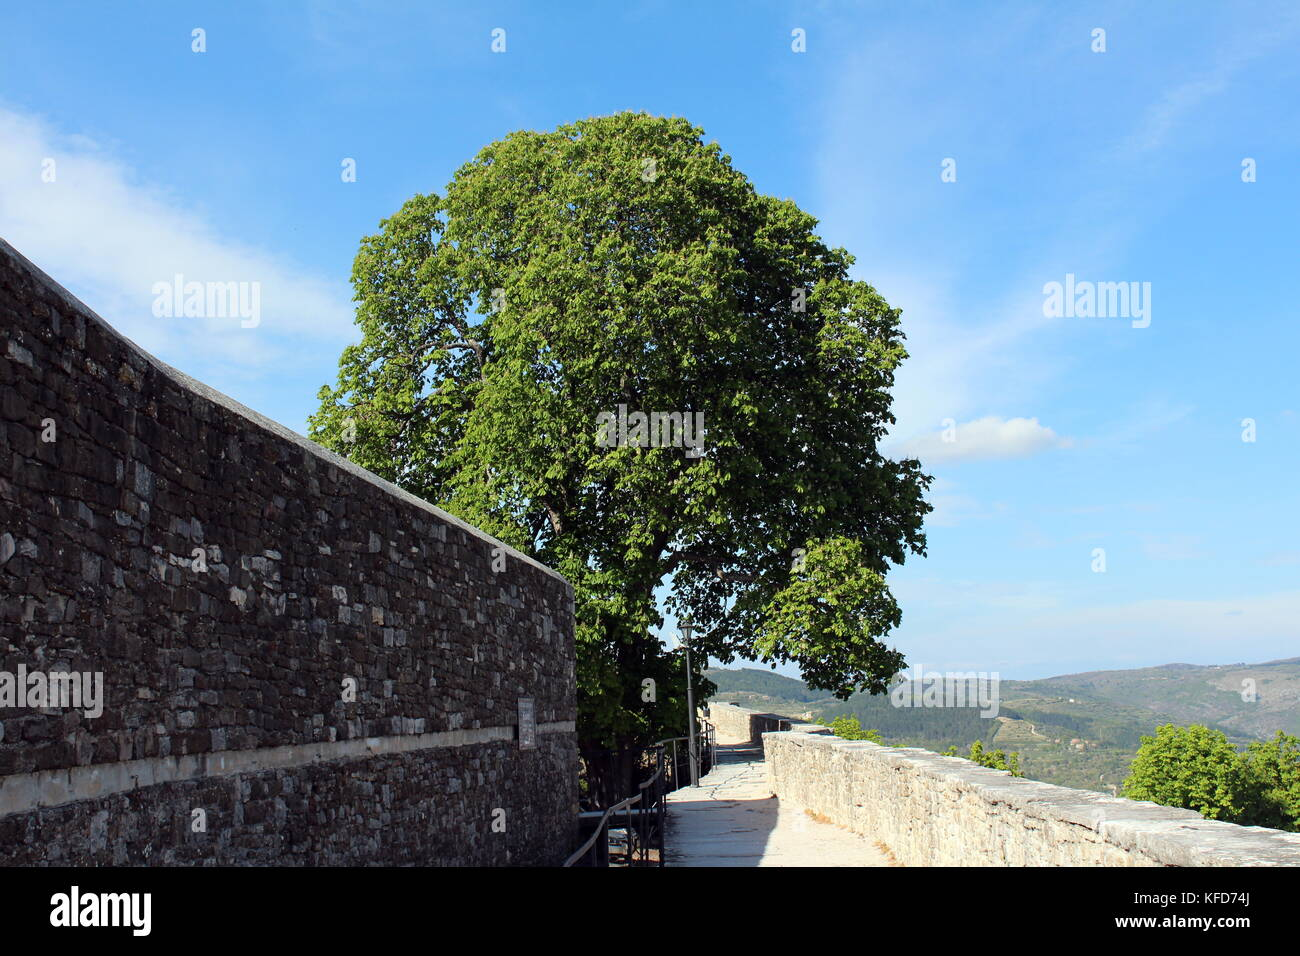 Mighty old tree partially hidden behind traditional stone wall next to stone sidewalk - Stock Image